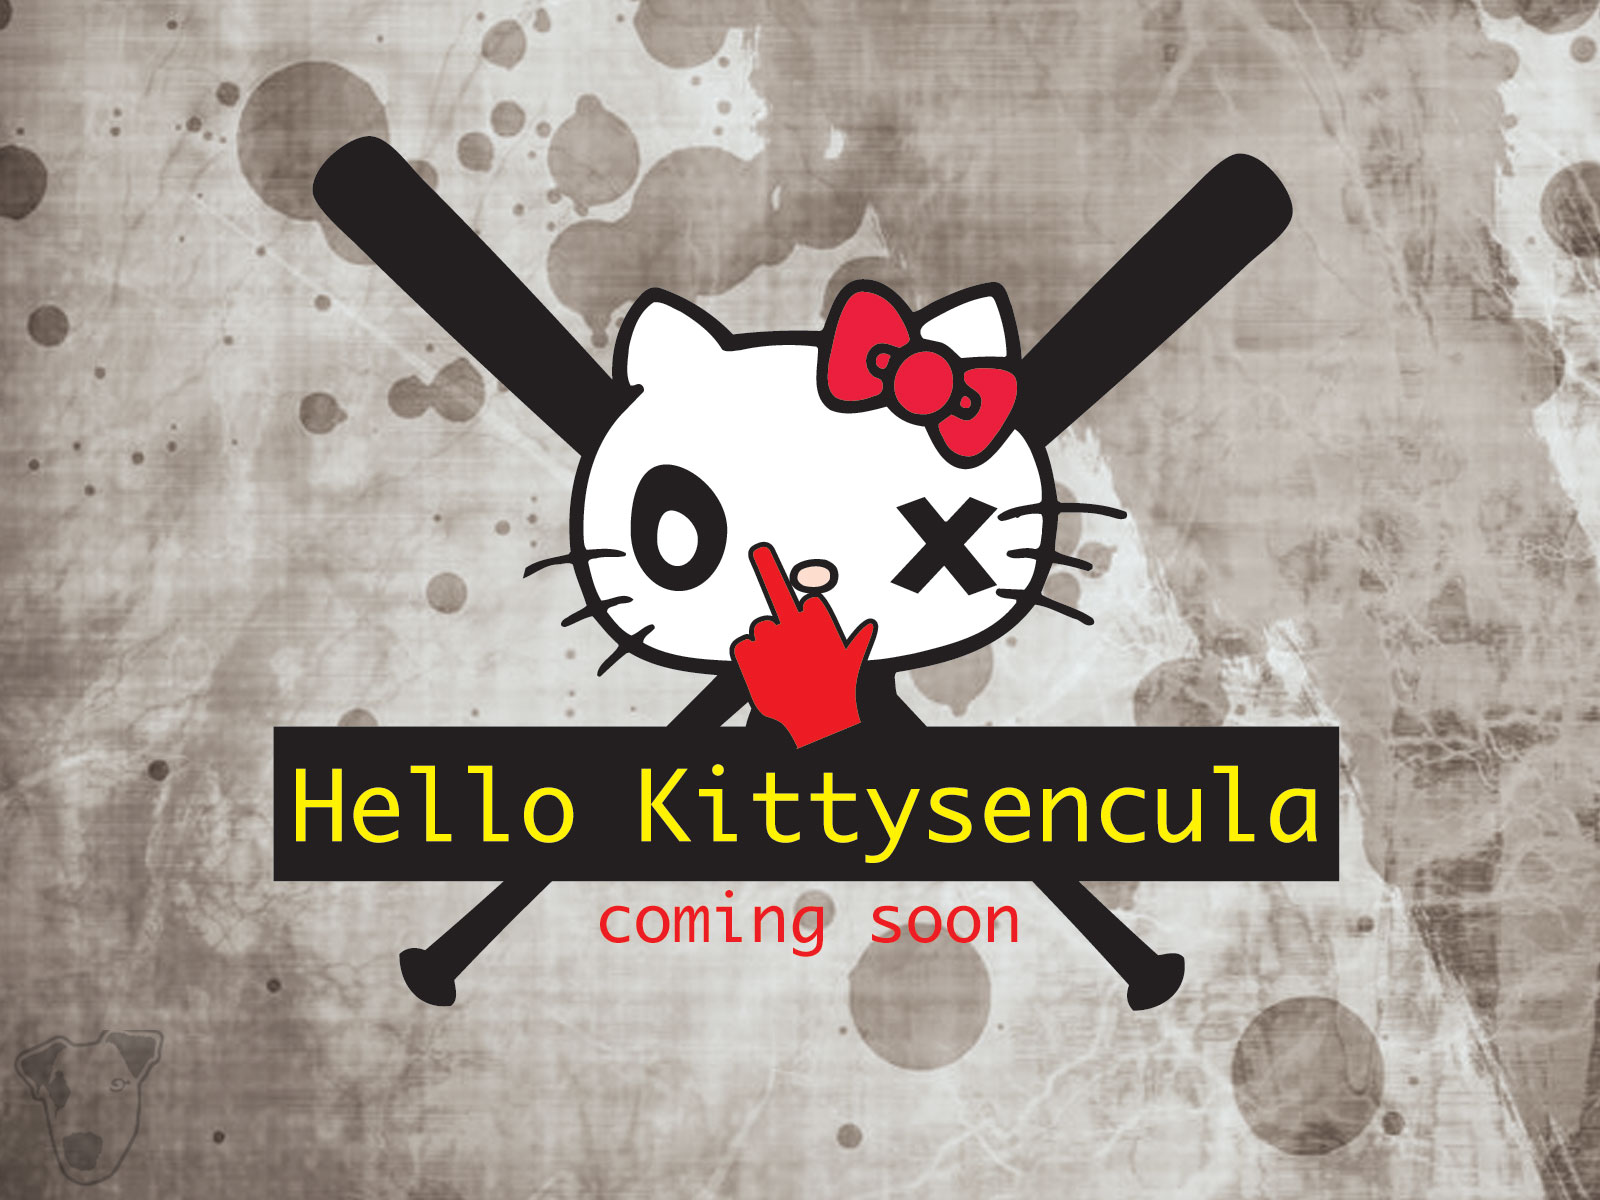 Hello-kittysencula